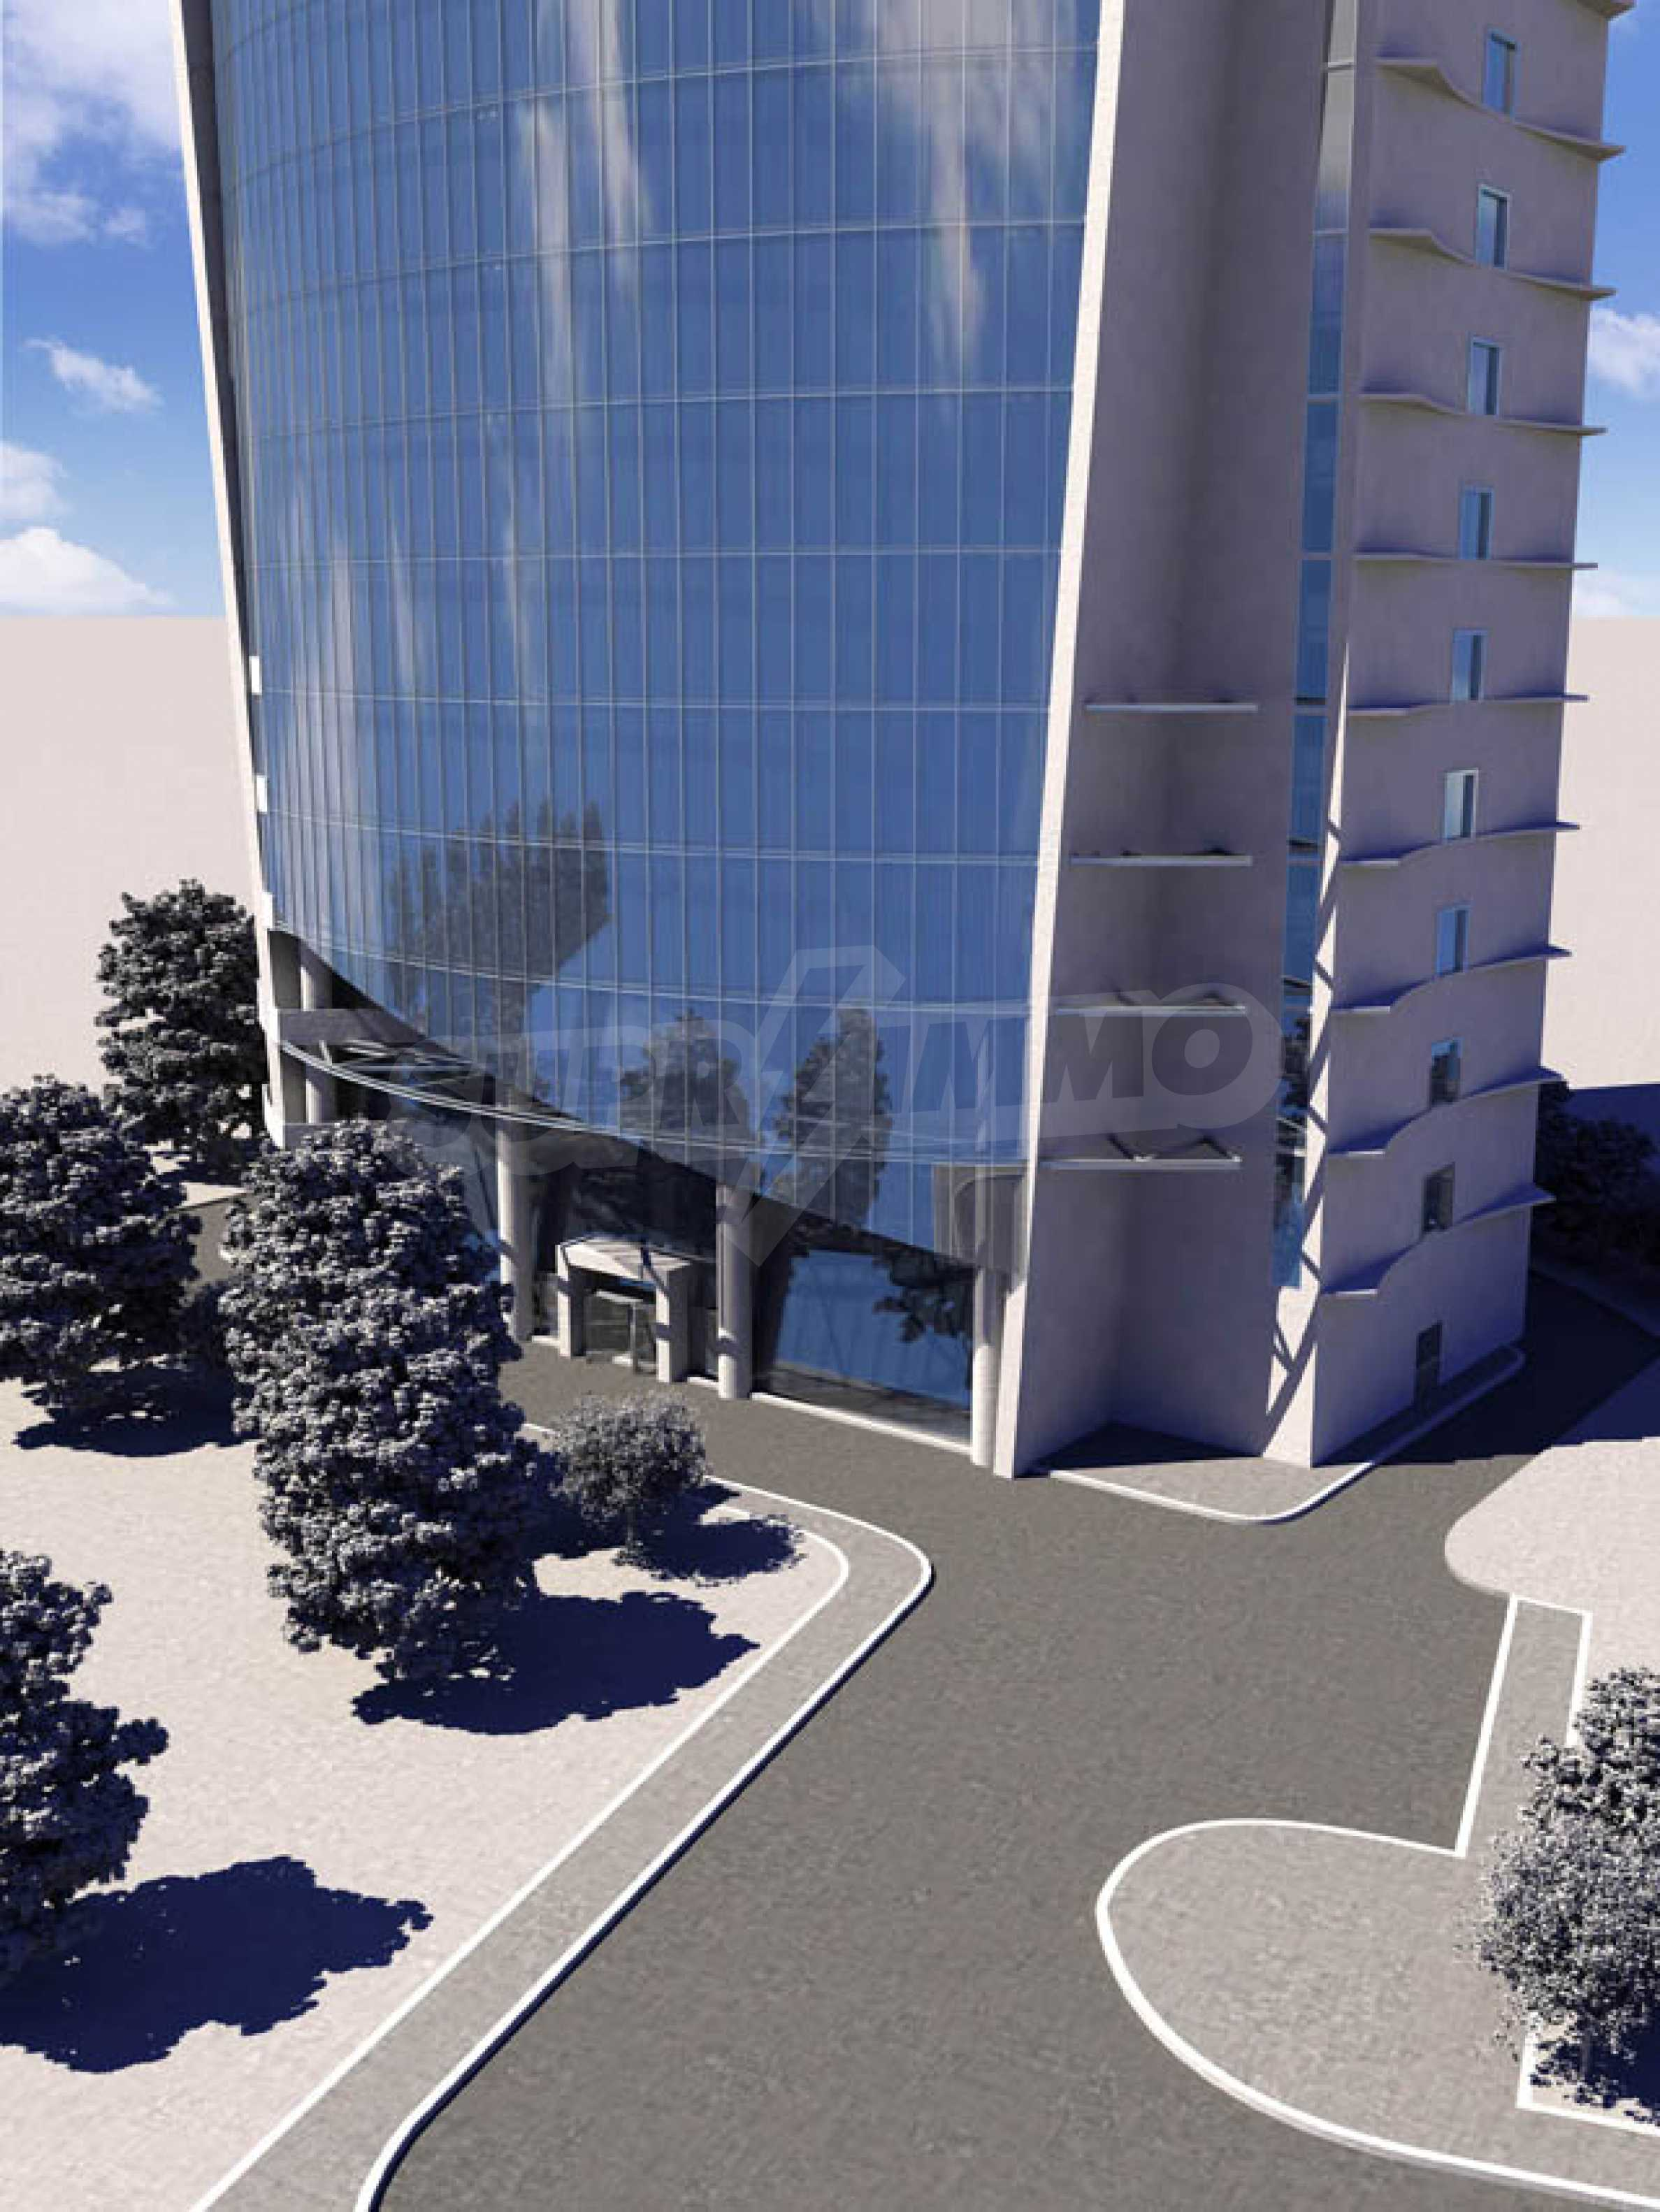 Plot with project for construction of an office building